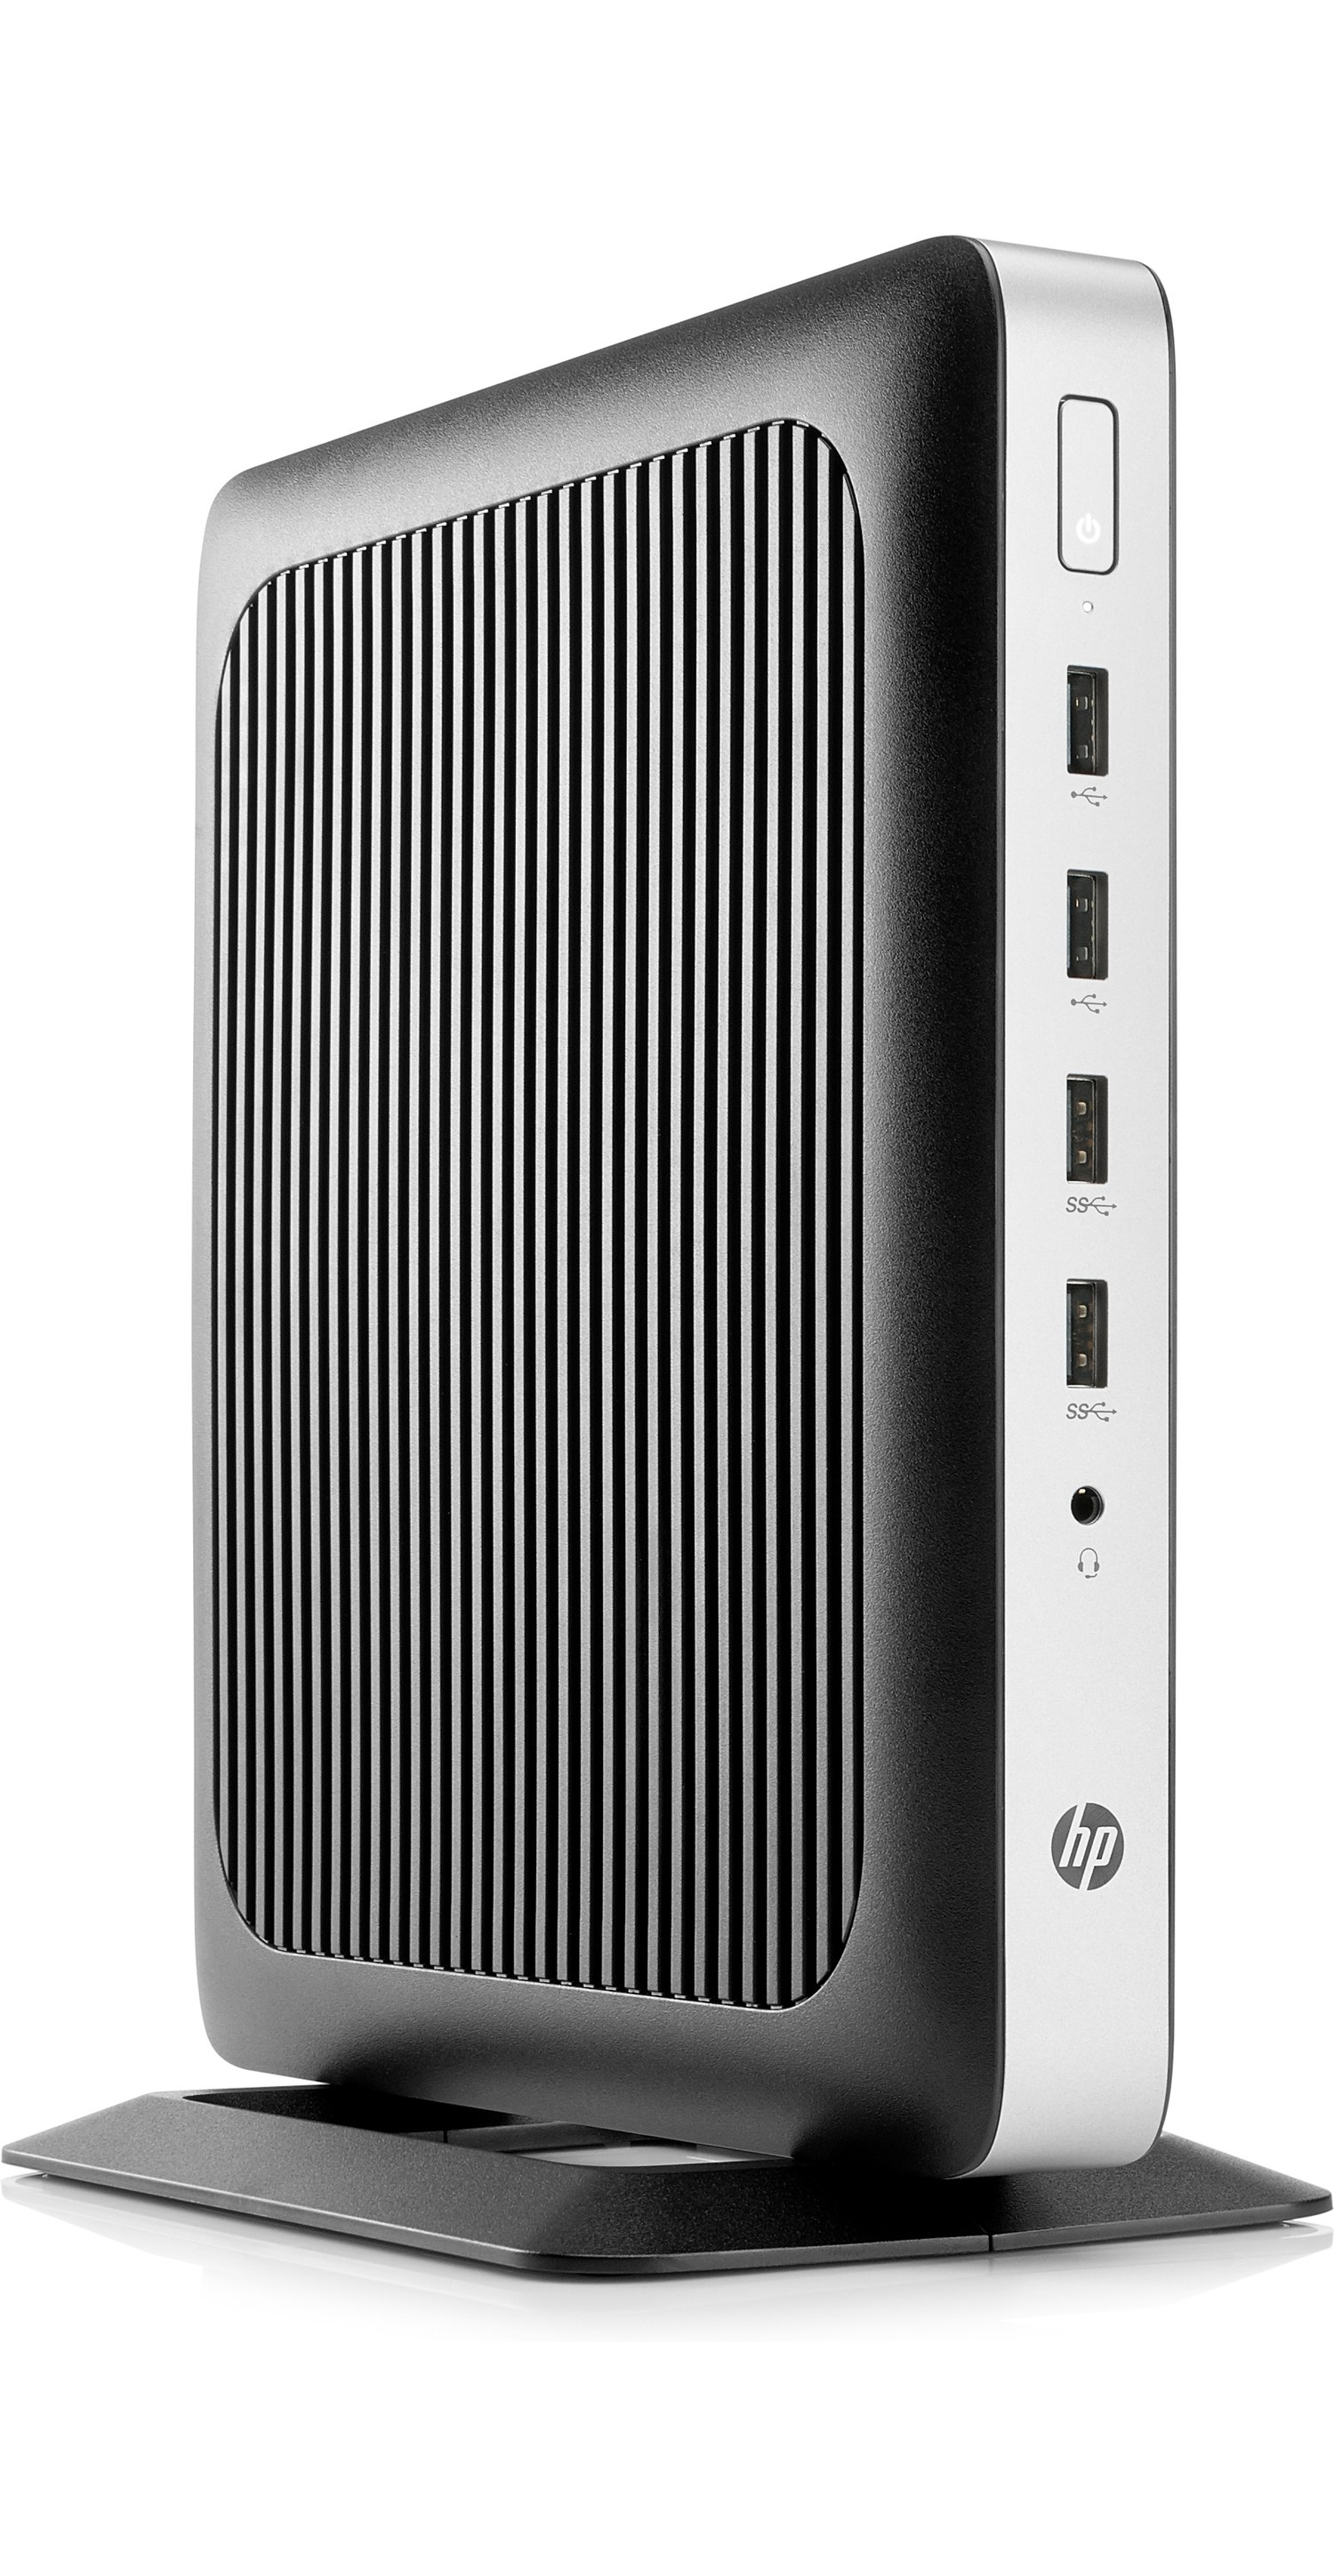 Hewlett-Packard, T630, AMD, GX-420GI, 4GB, 32GB, W10, IOT, WIFI,